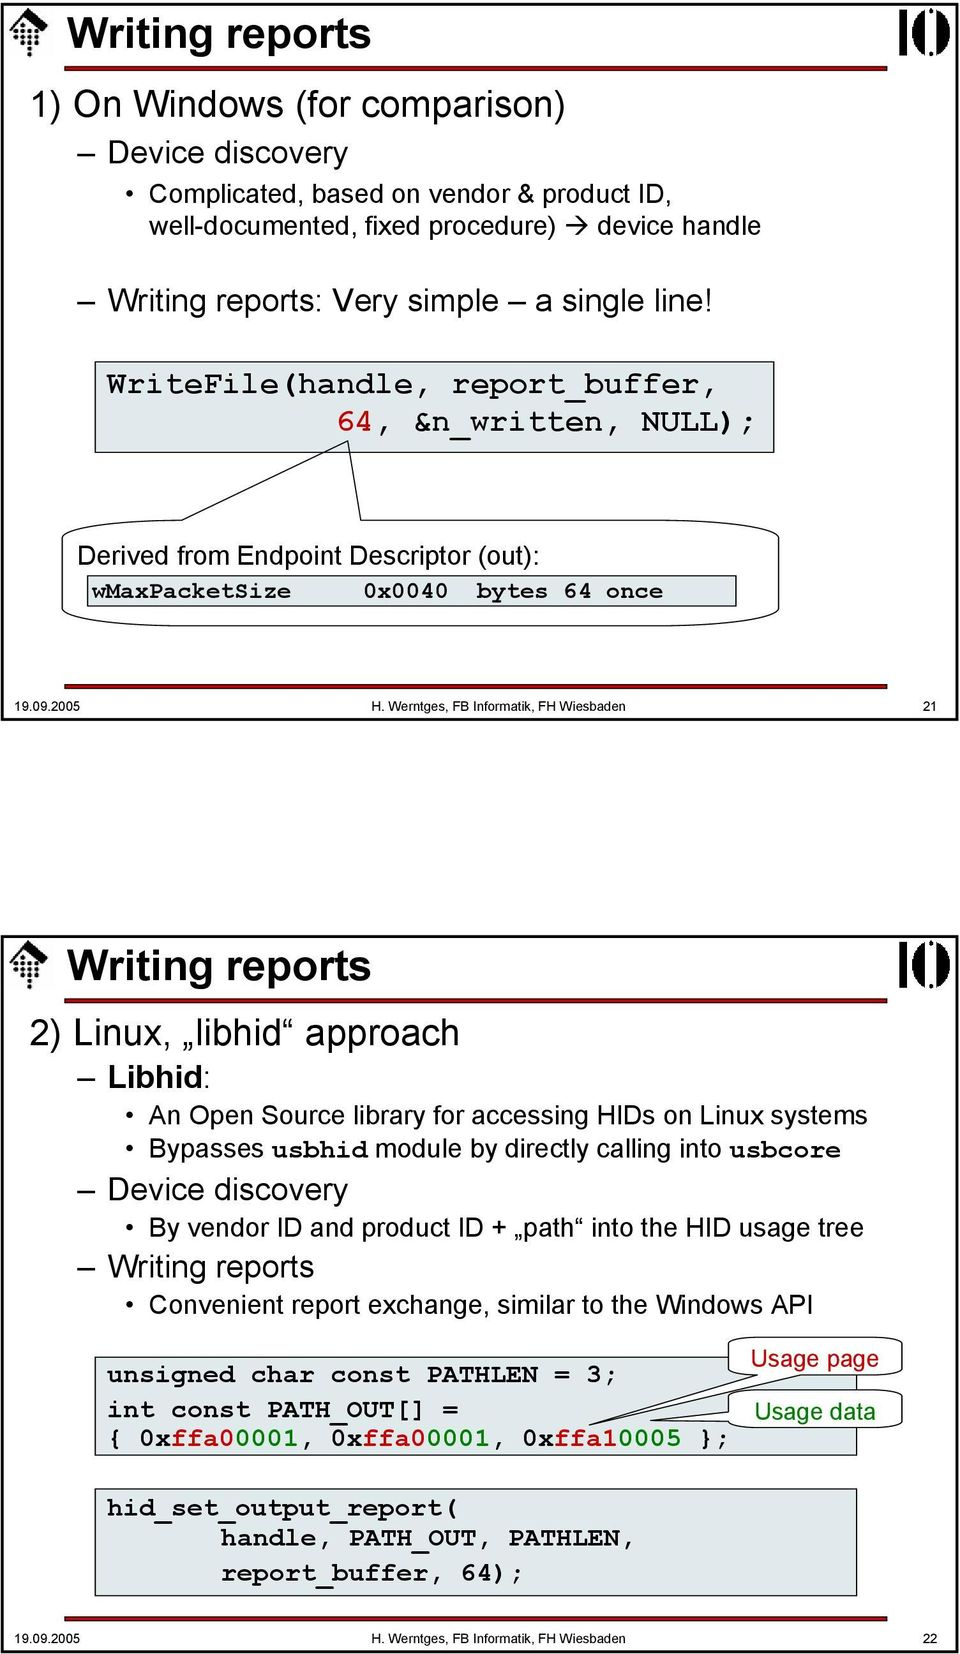 Werntges, FB Informatik, FH Wiesbaden 21 Writing reports 2) Linux, libhid approach Libhid: An Open Source library for accessing HIDs on Linux systems Bypasses usbhid module by directly calling into